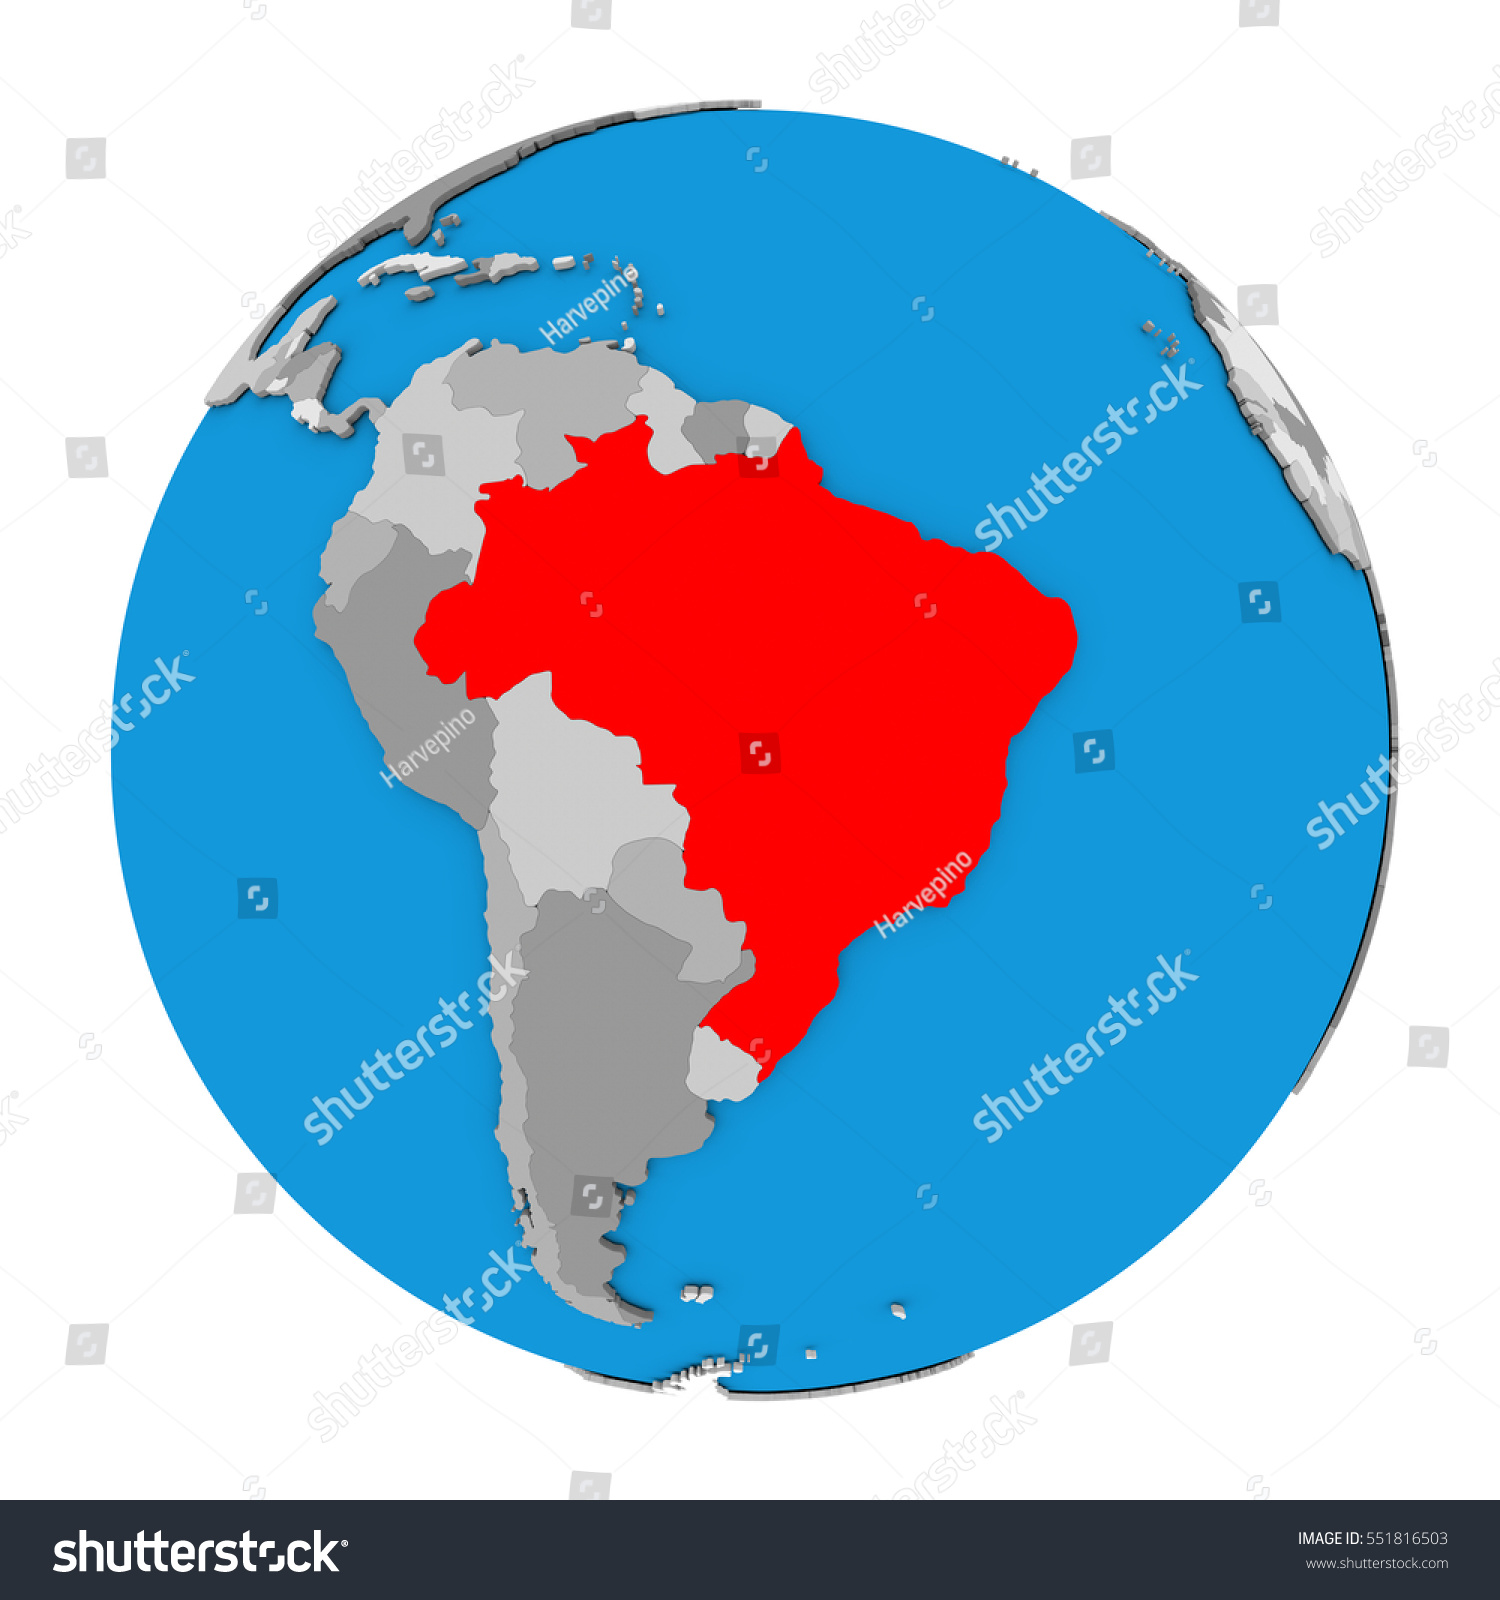 Map brazil highlighted red on globe stock illustration 551816503 map brazil highlighted red on globe stock illustration 551816503 shutterstock gumiabroncs Images